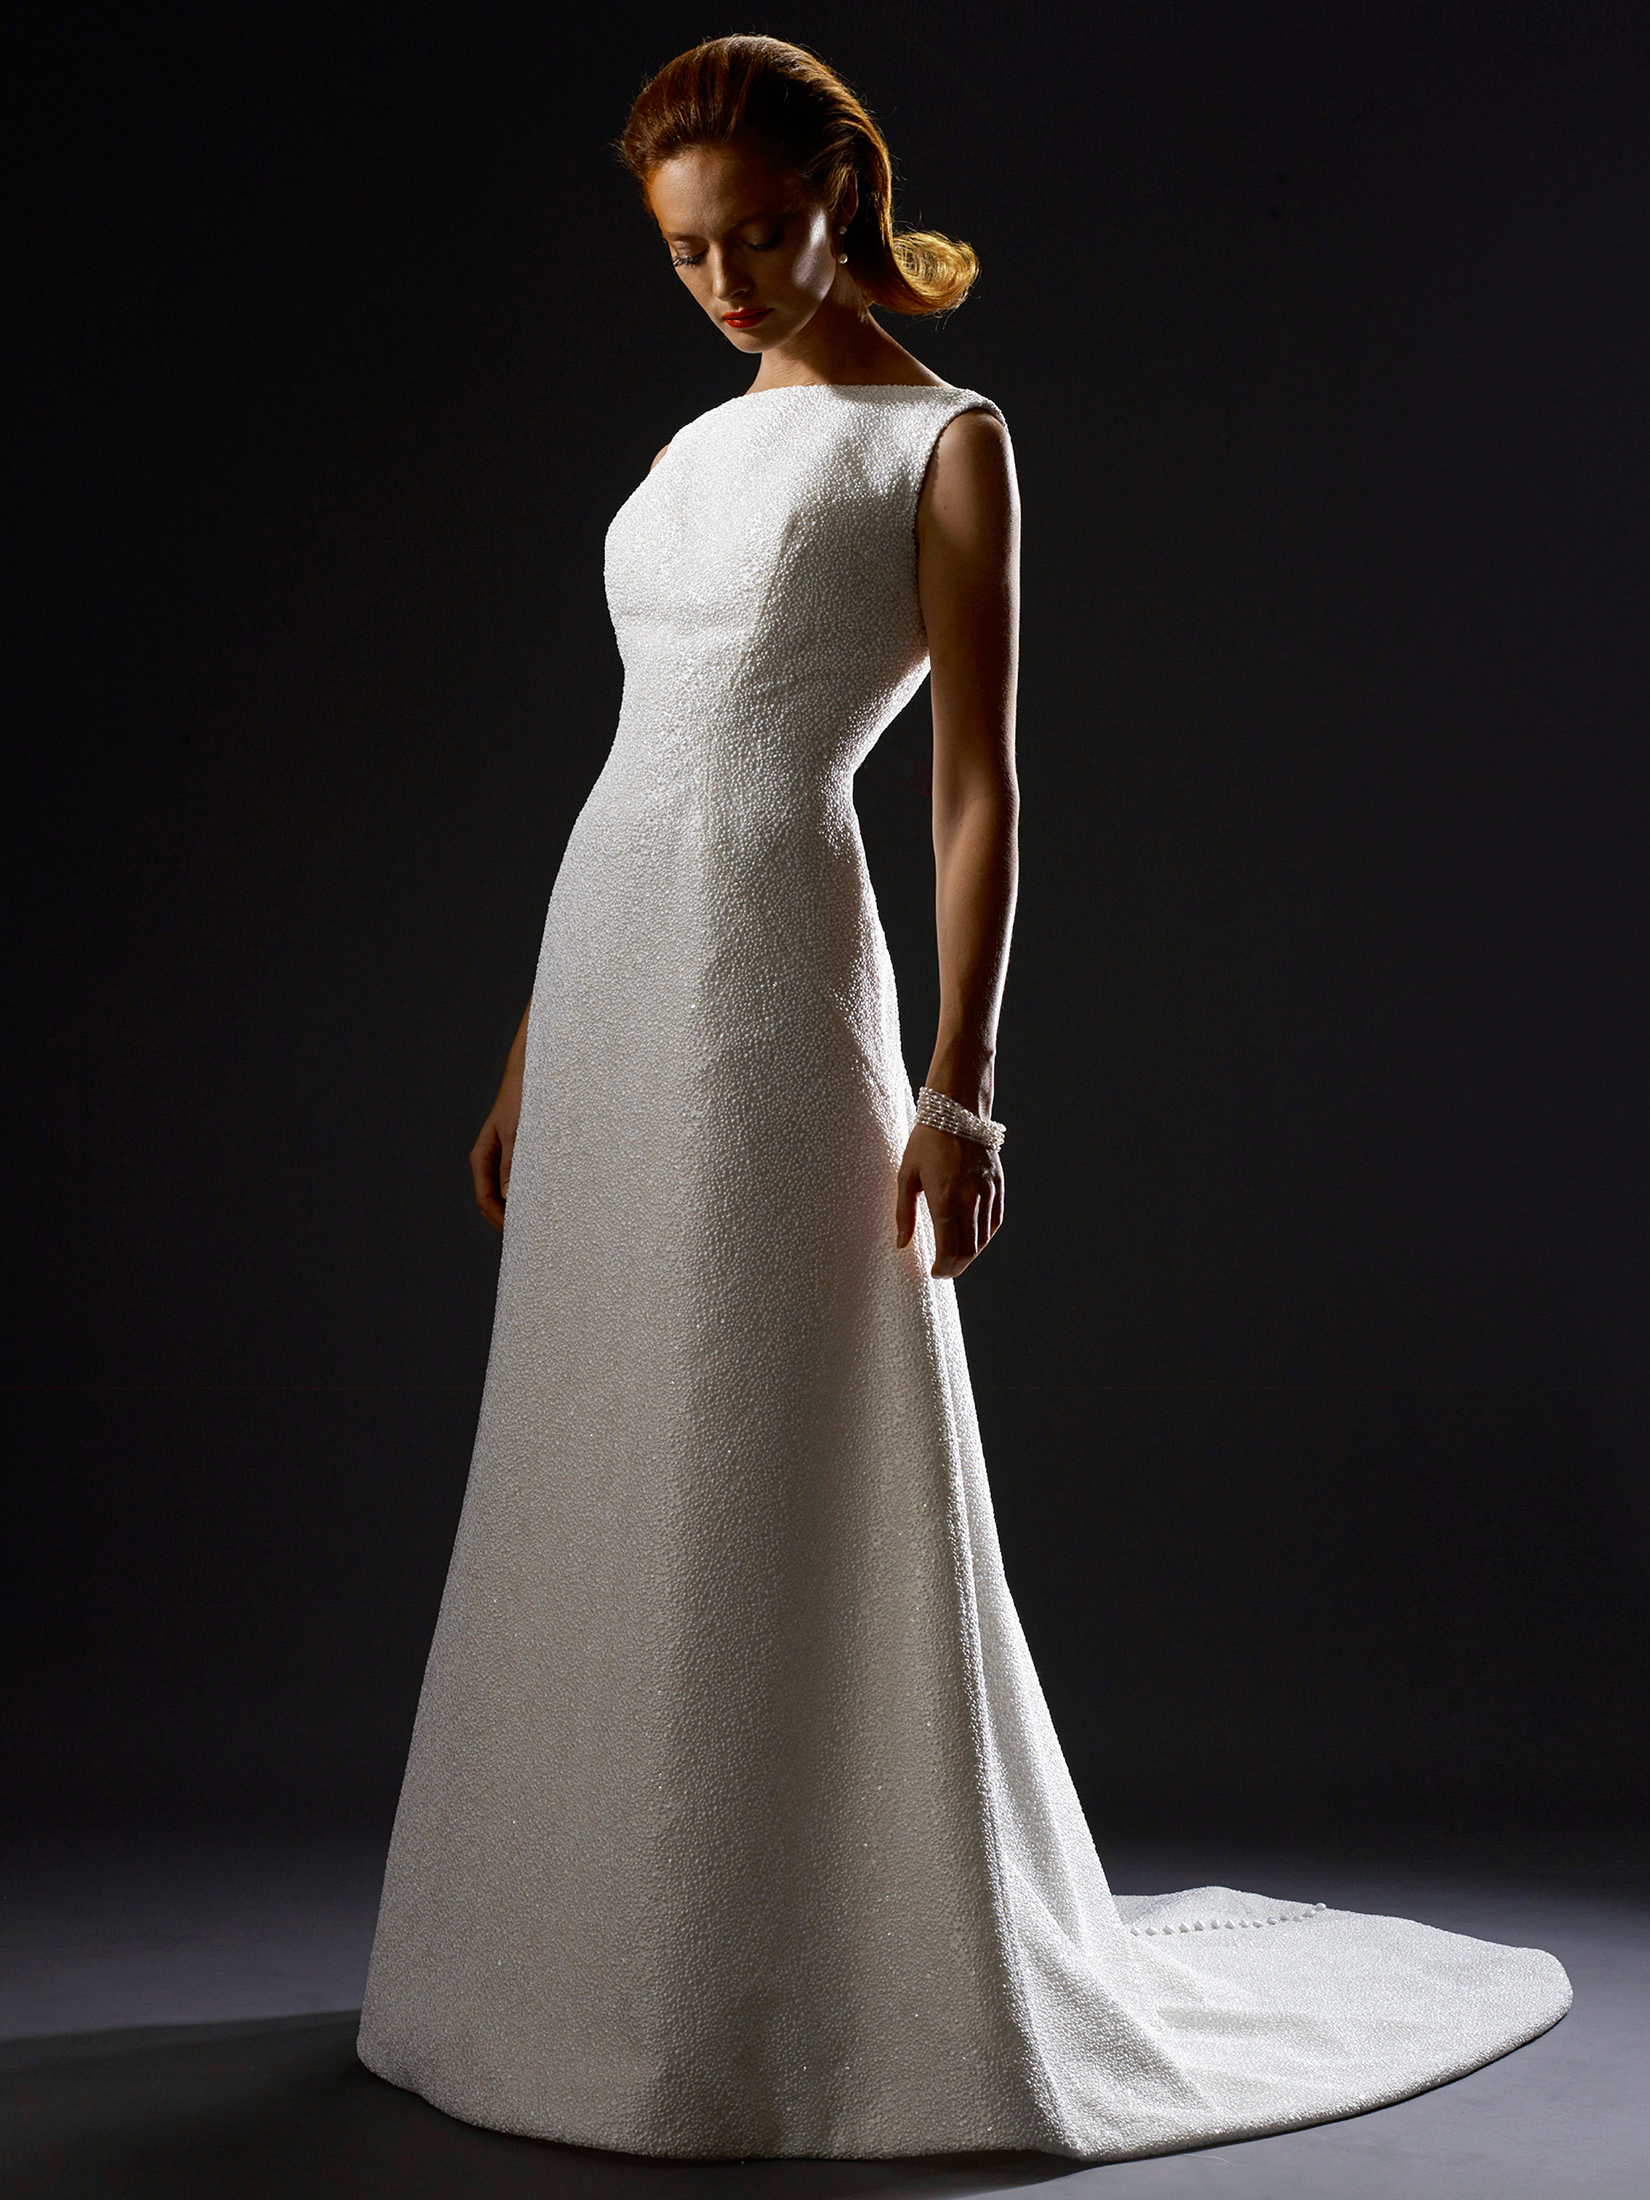 steven birnbaum fall 2019 high neck trumpet wedding dress